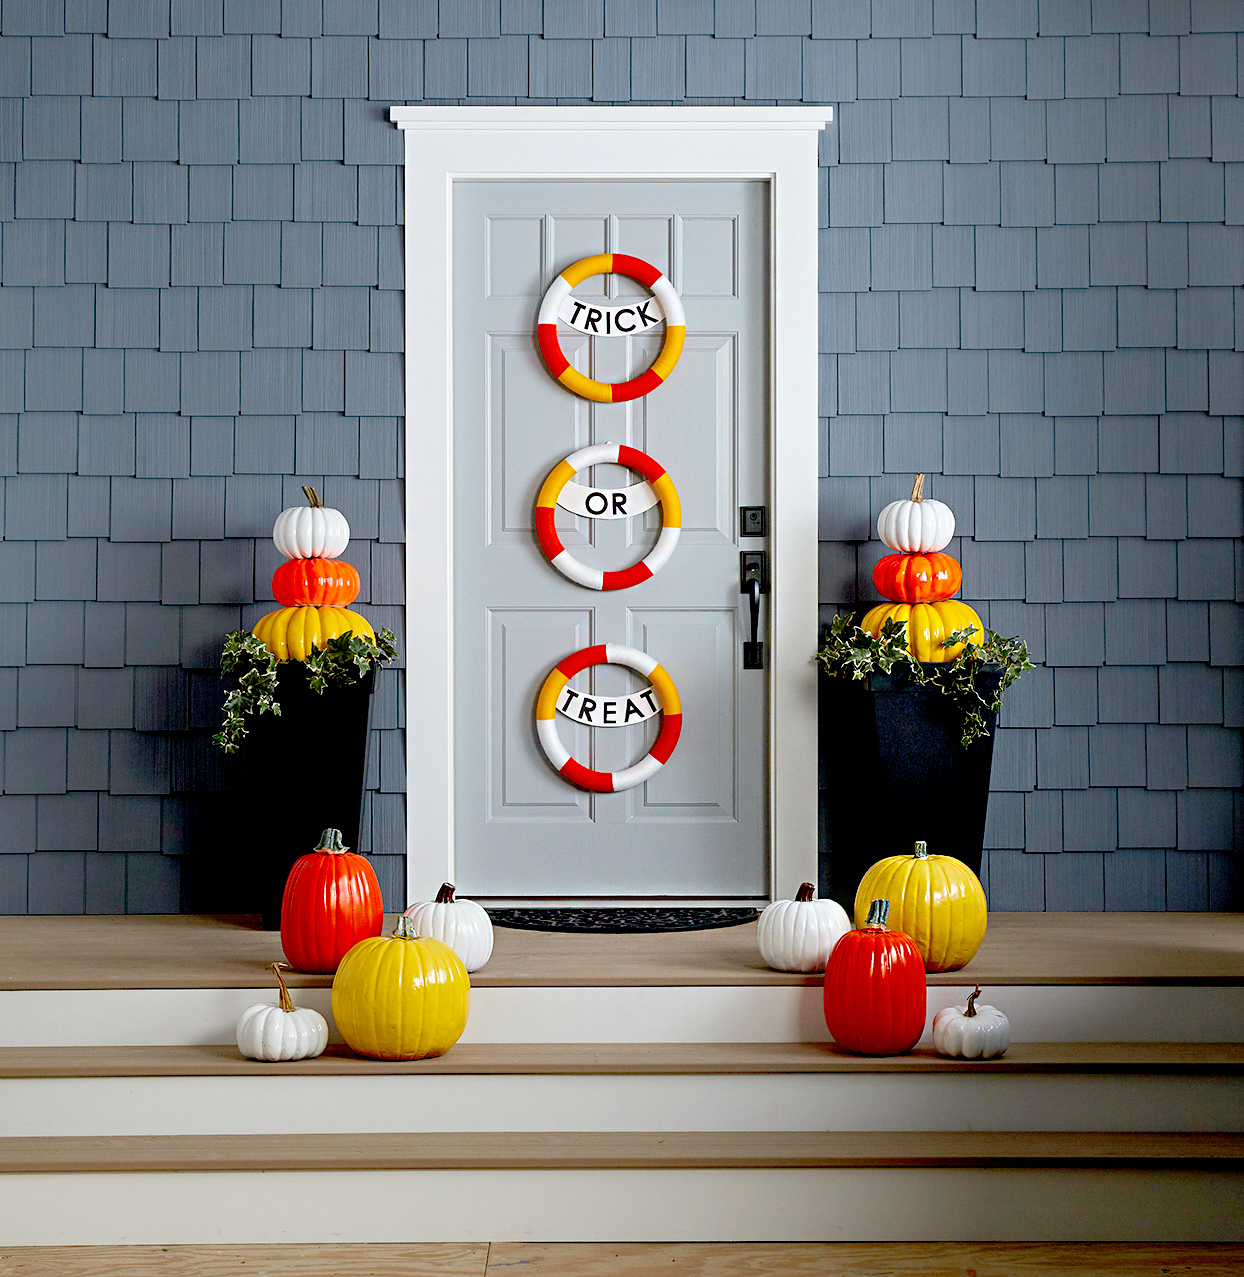 Doorway with Halloween décor, pumpkins, Trick or Treat sign